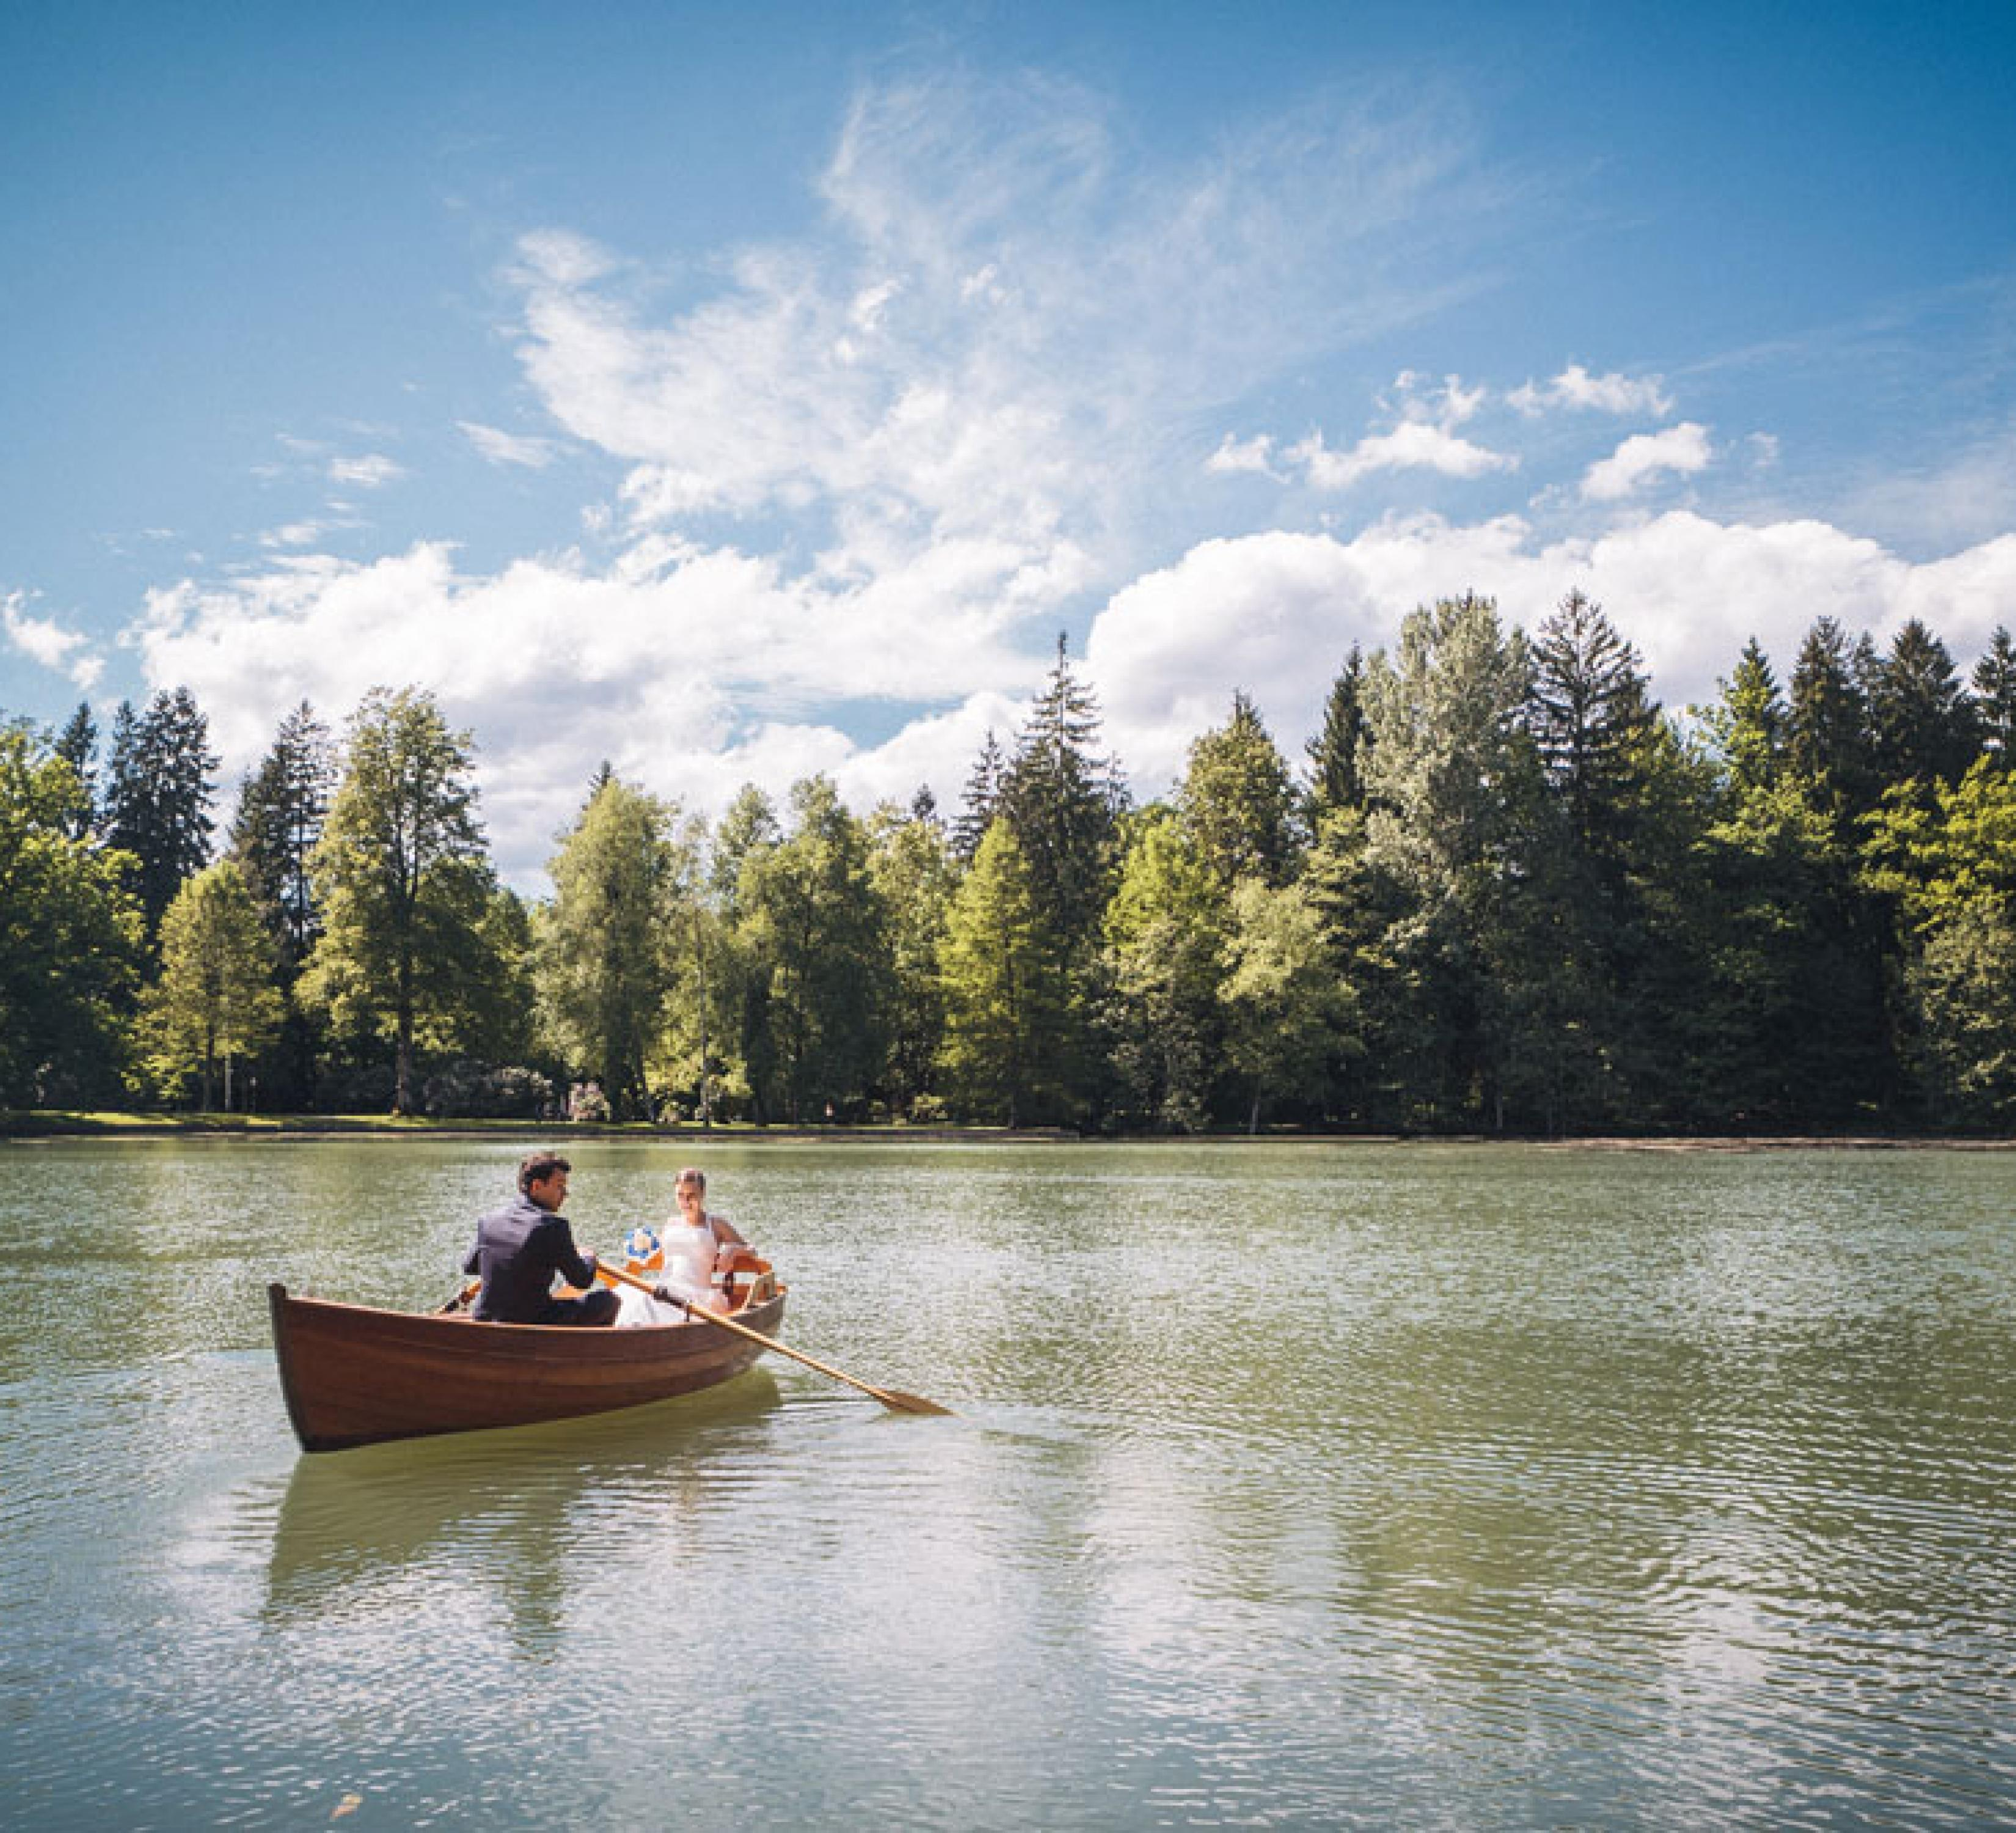 Couple on a wooden rowing boat in Brdo